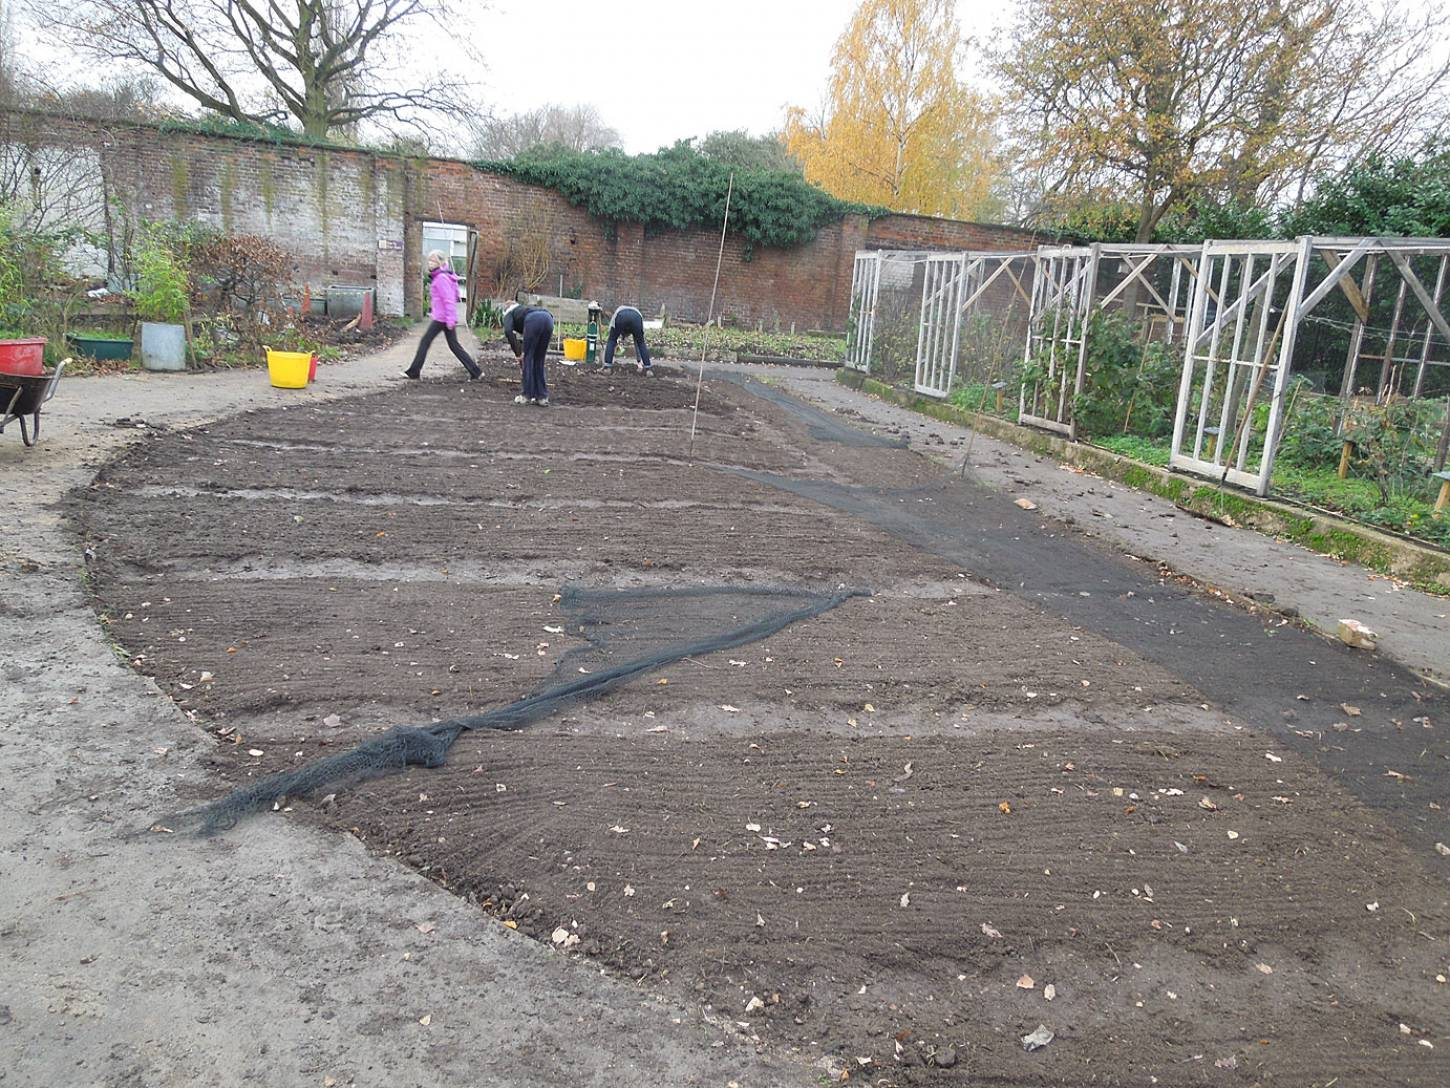 sowing at the <A href='http://www.brockwellgreenhouses.org.uk/welcome/' target=_blank>Brockwell Community Greenhouses</a>, covering with nets - 3:15pm&nbsp;26<sup>th</sup>&nbsp;Nov.&nbsp;'15